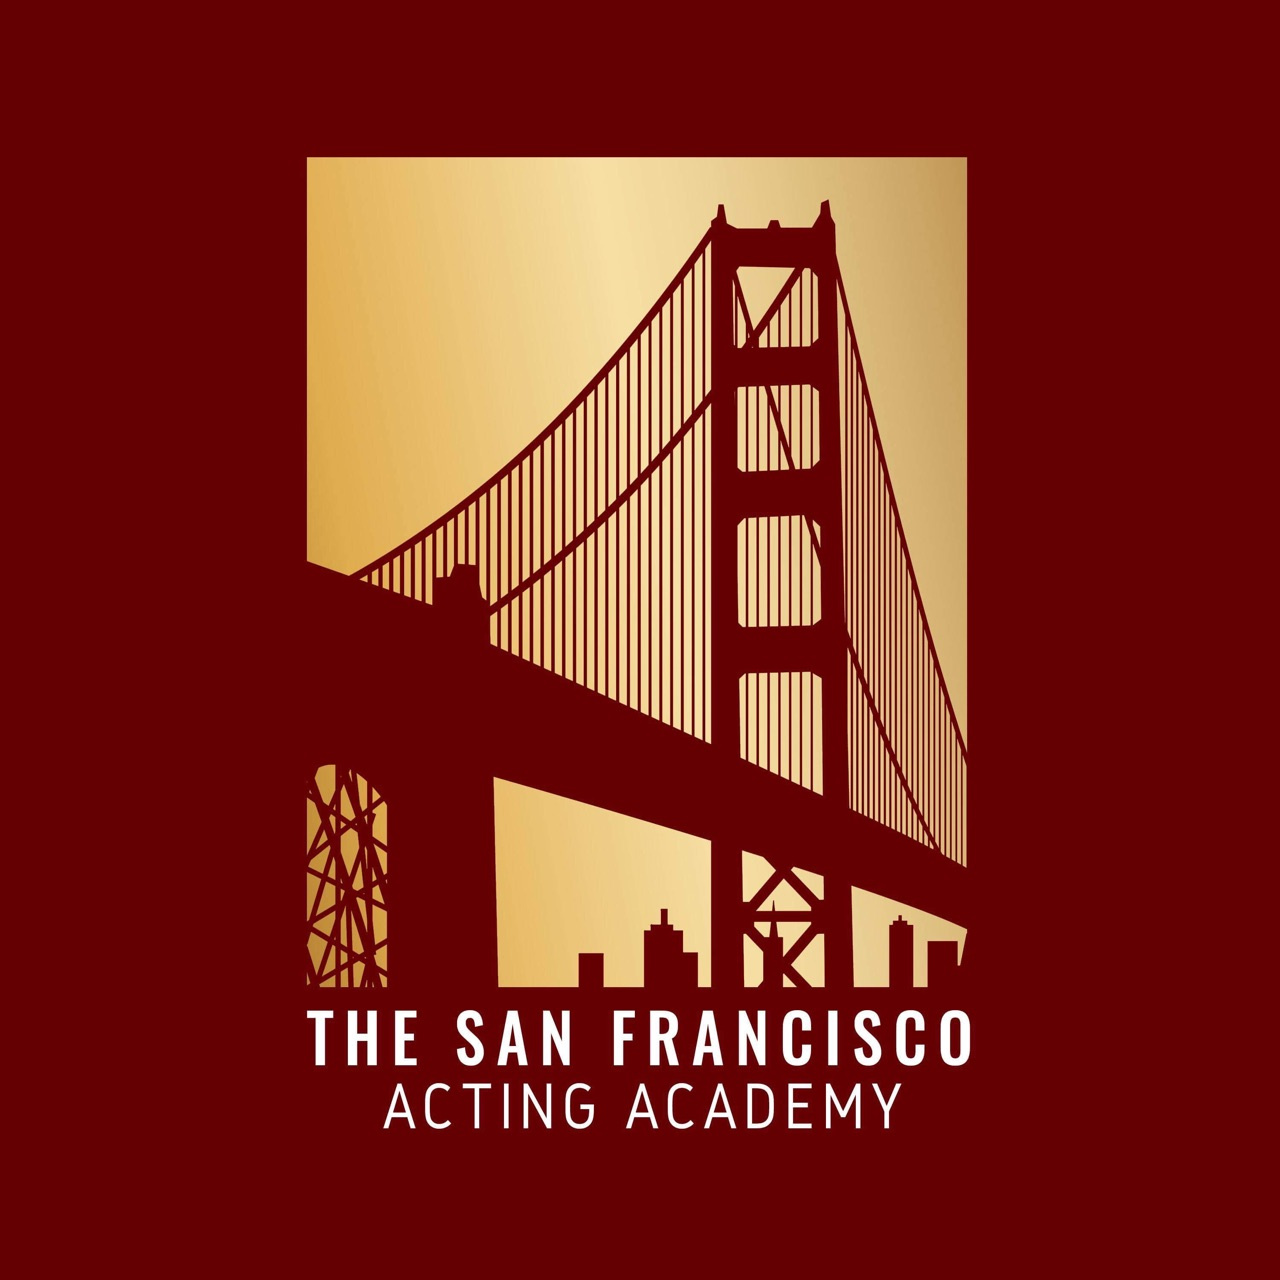 The San Francisco Acting Academy